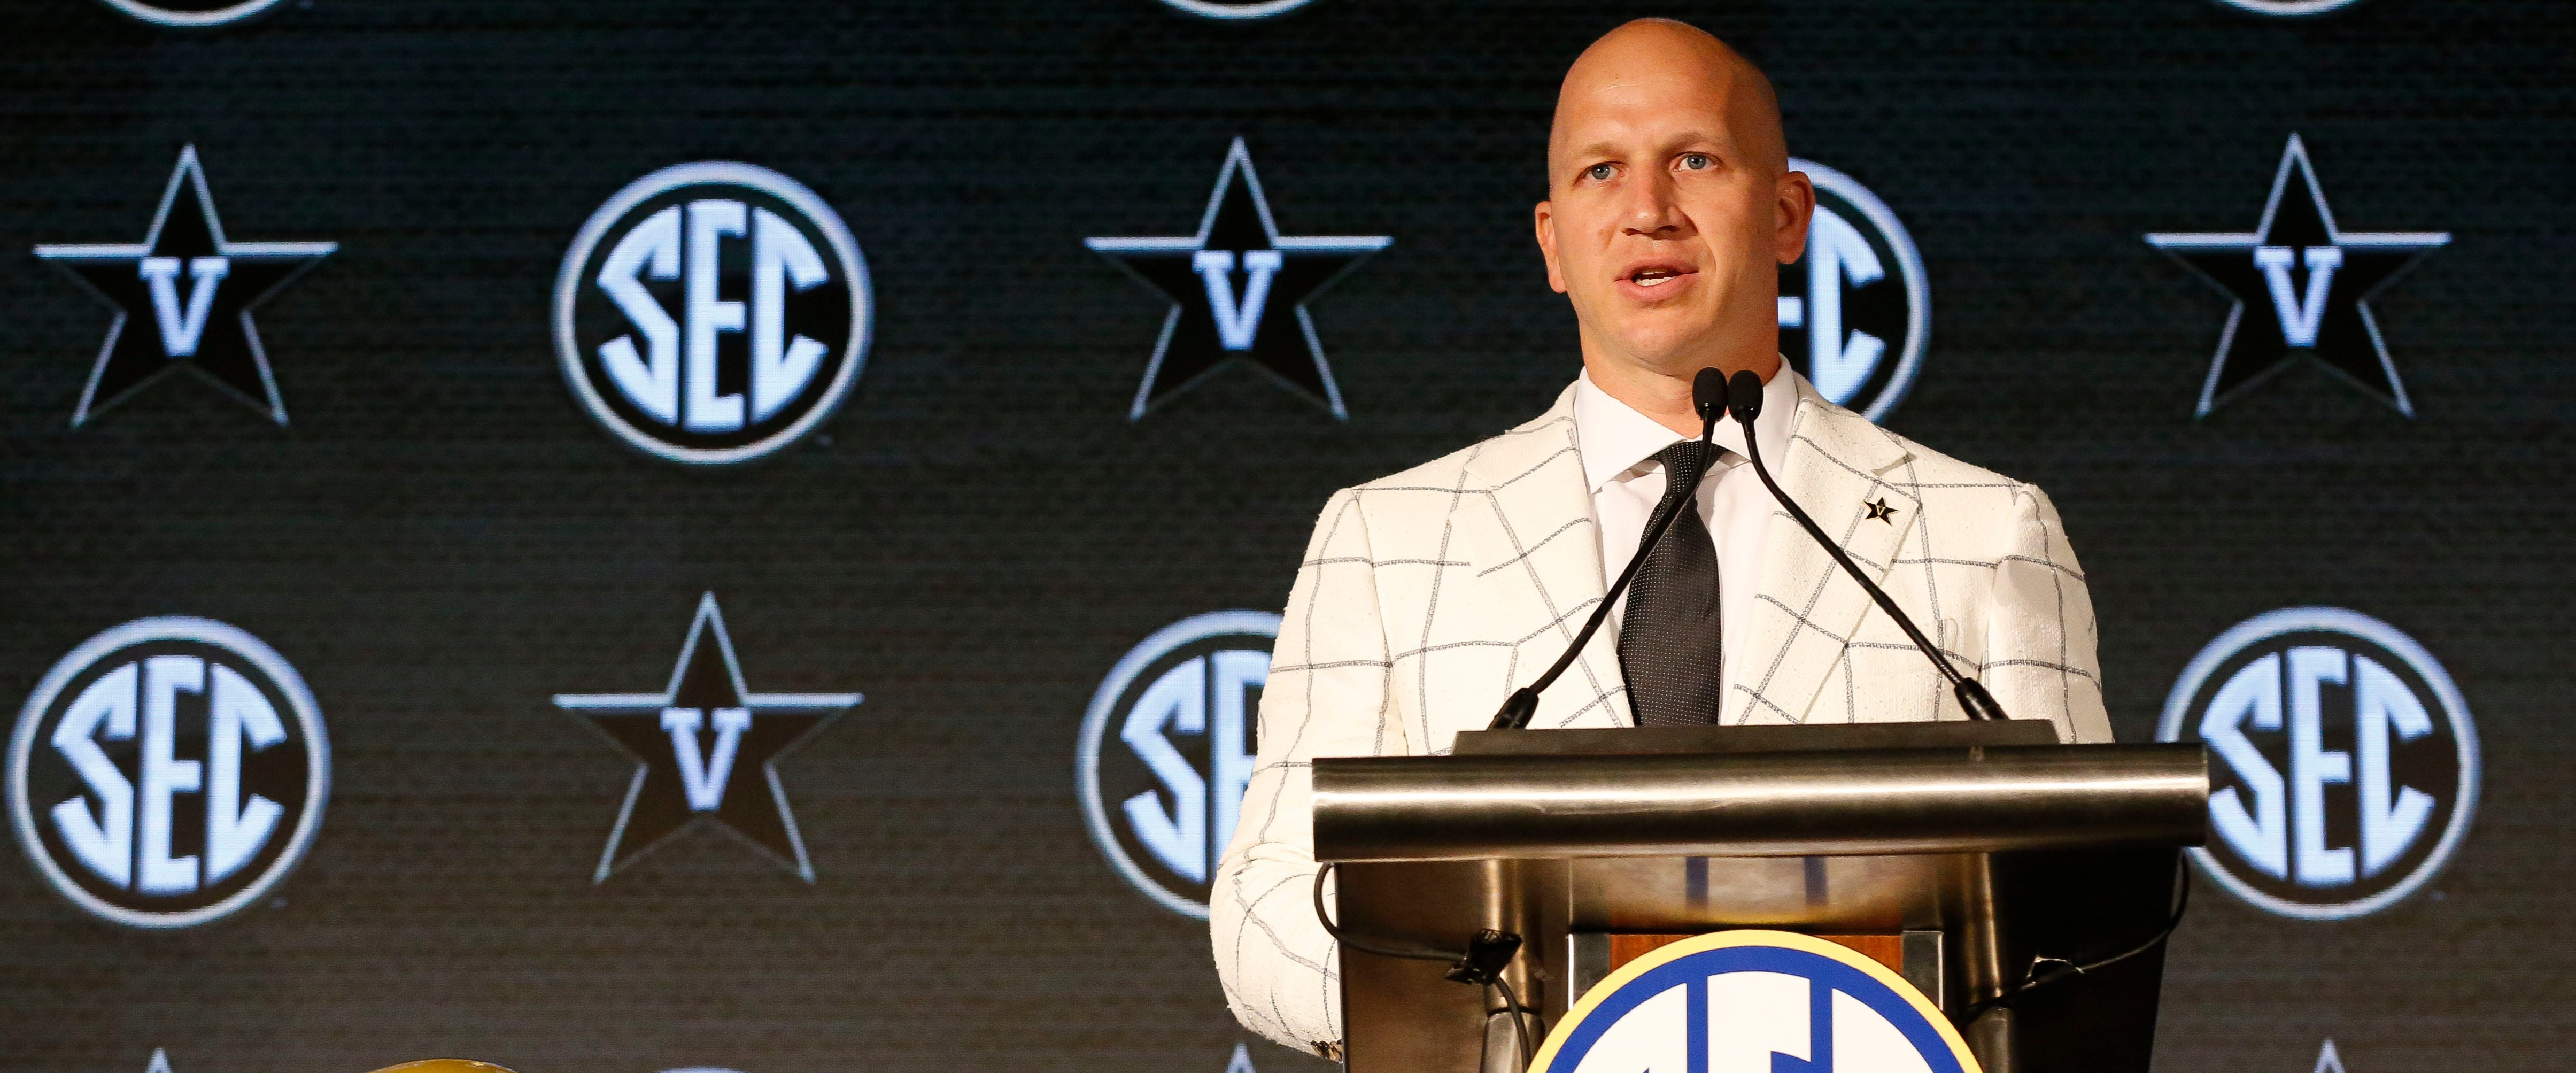 What did we learn from new head coach Clark Lea at SEC Media Day?